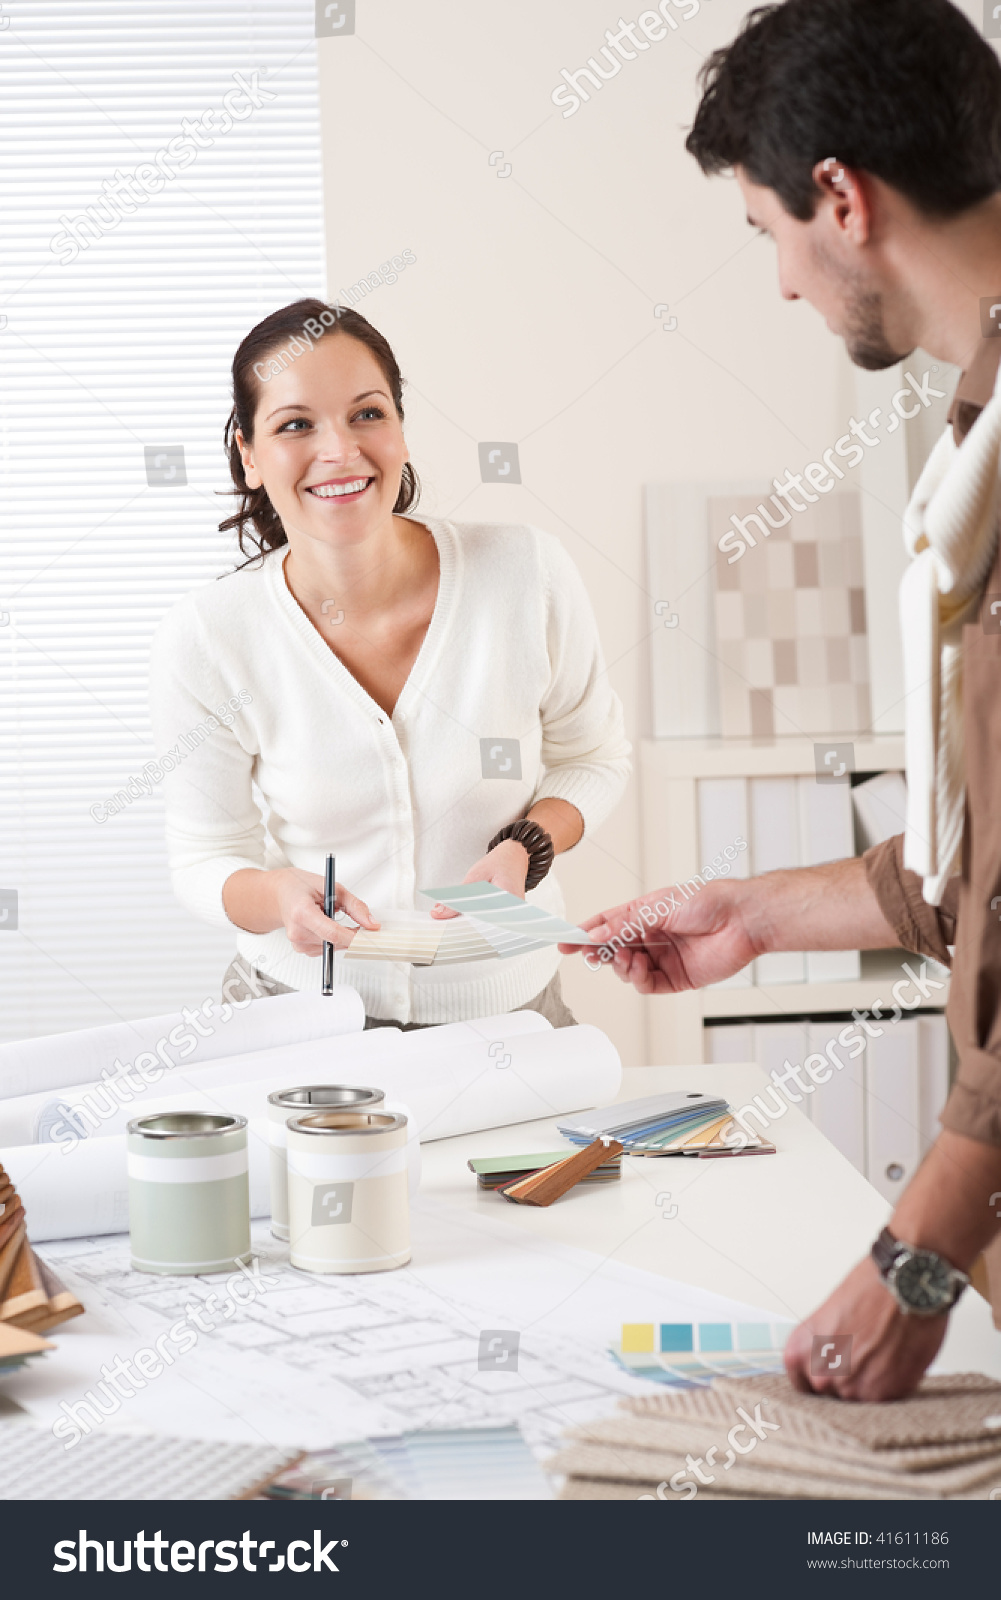 Two interior designer working at office with color swatch and can of paint stock photo 41611186 for Where can you work as an interior designer